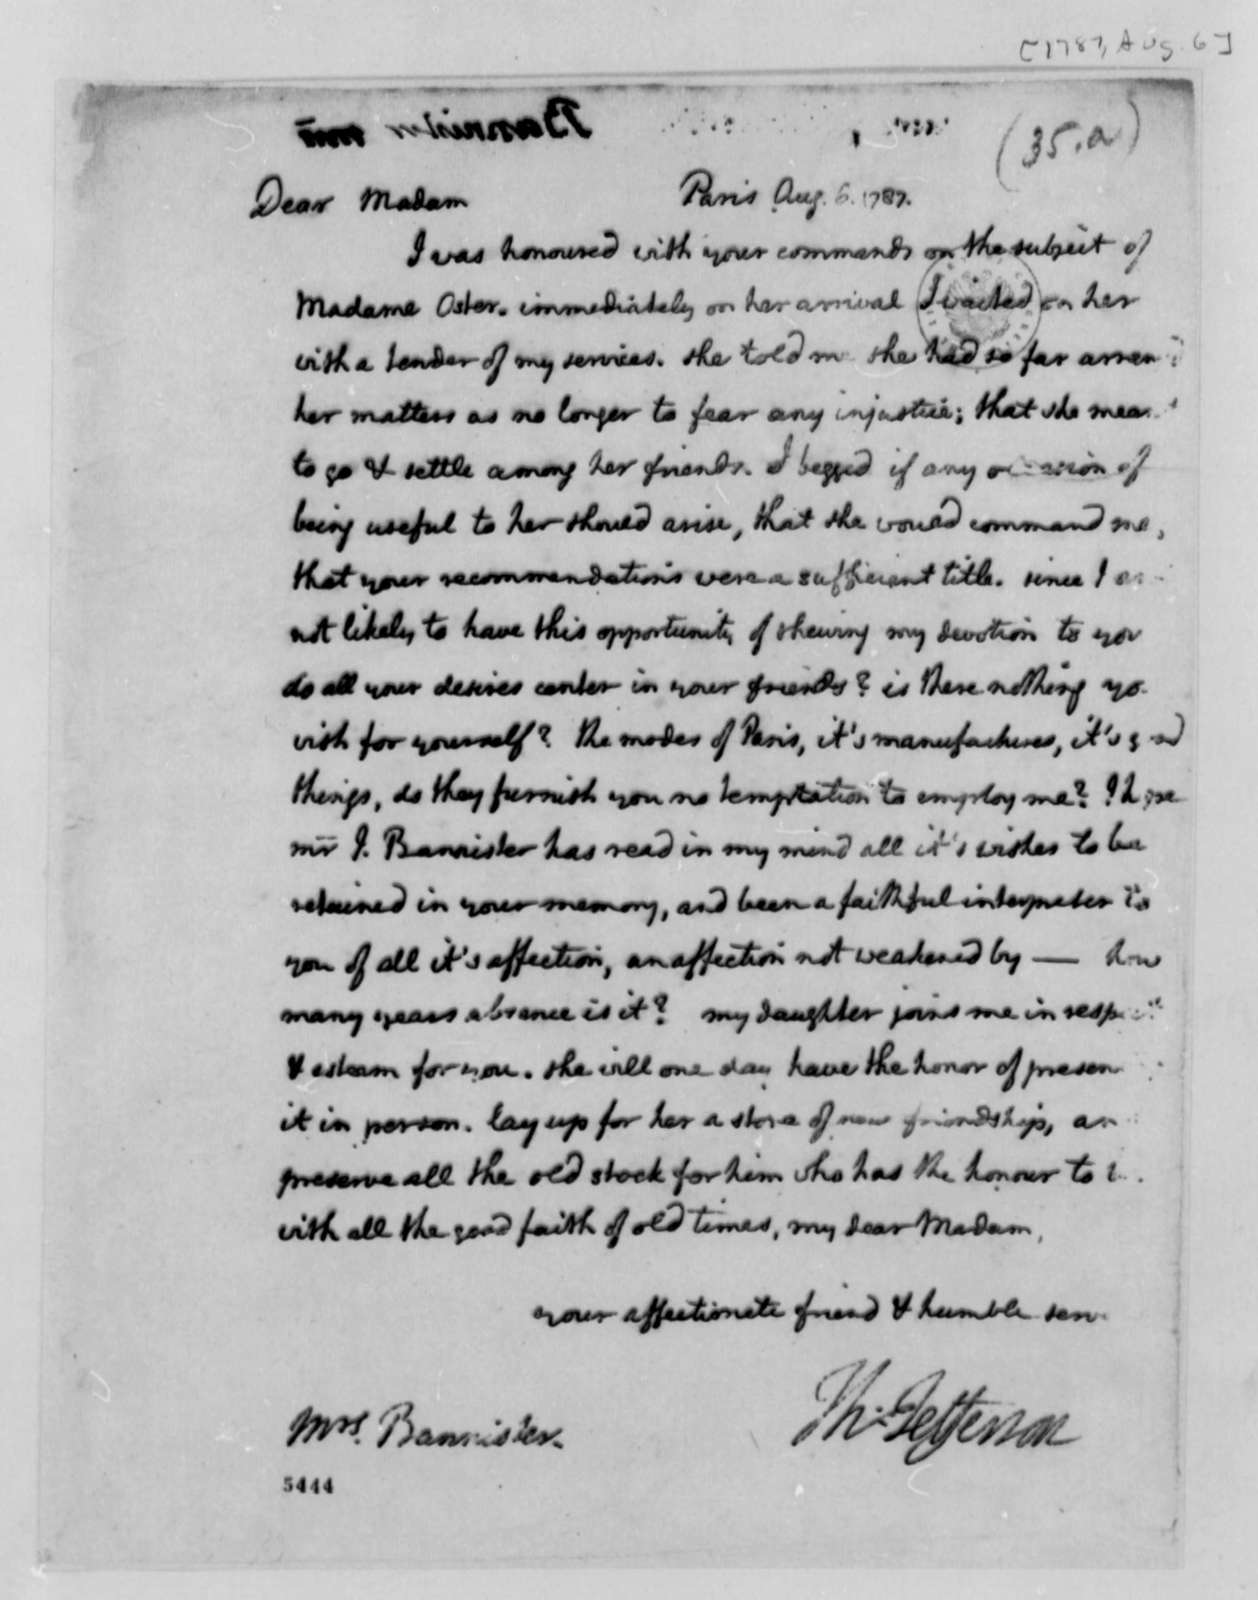 Thomas Jefferson to Anne Blair Banister, August 6, 1787